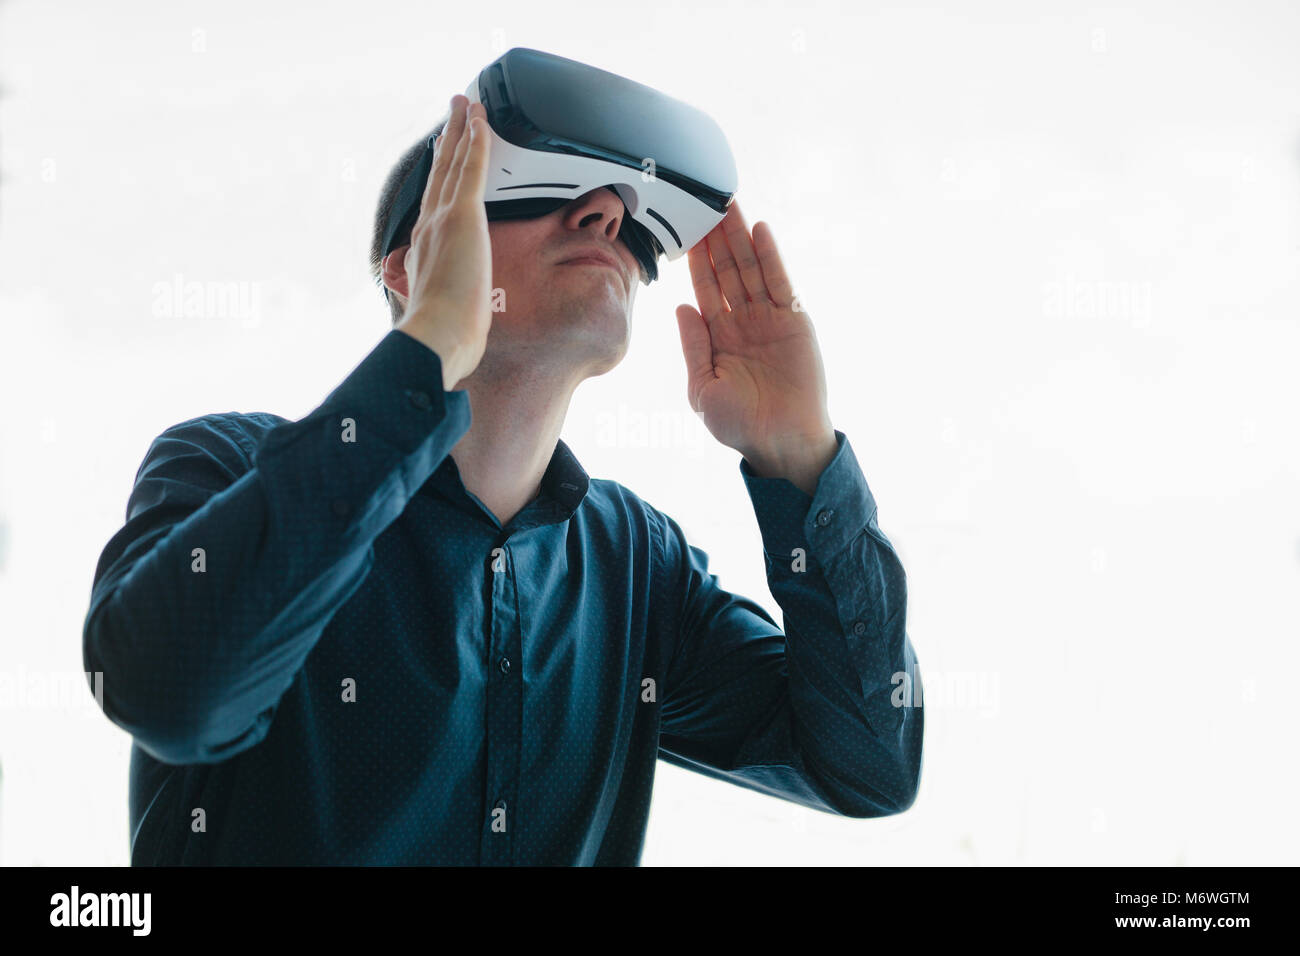 The man with glasses of virtual reality. Future technology concept. Modern imaging technology - Stock Image